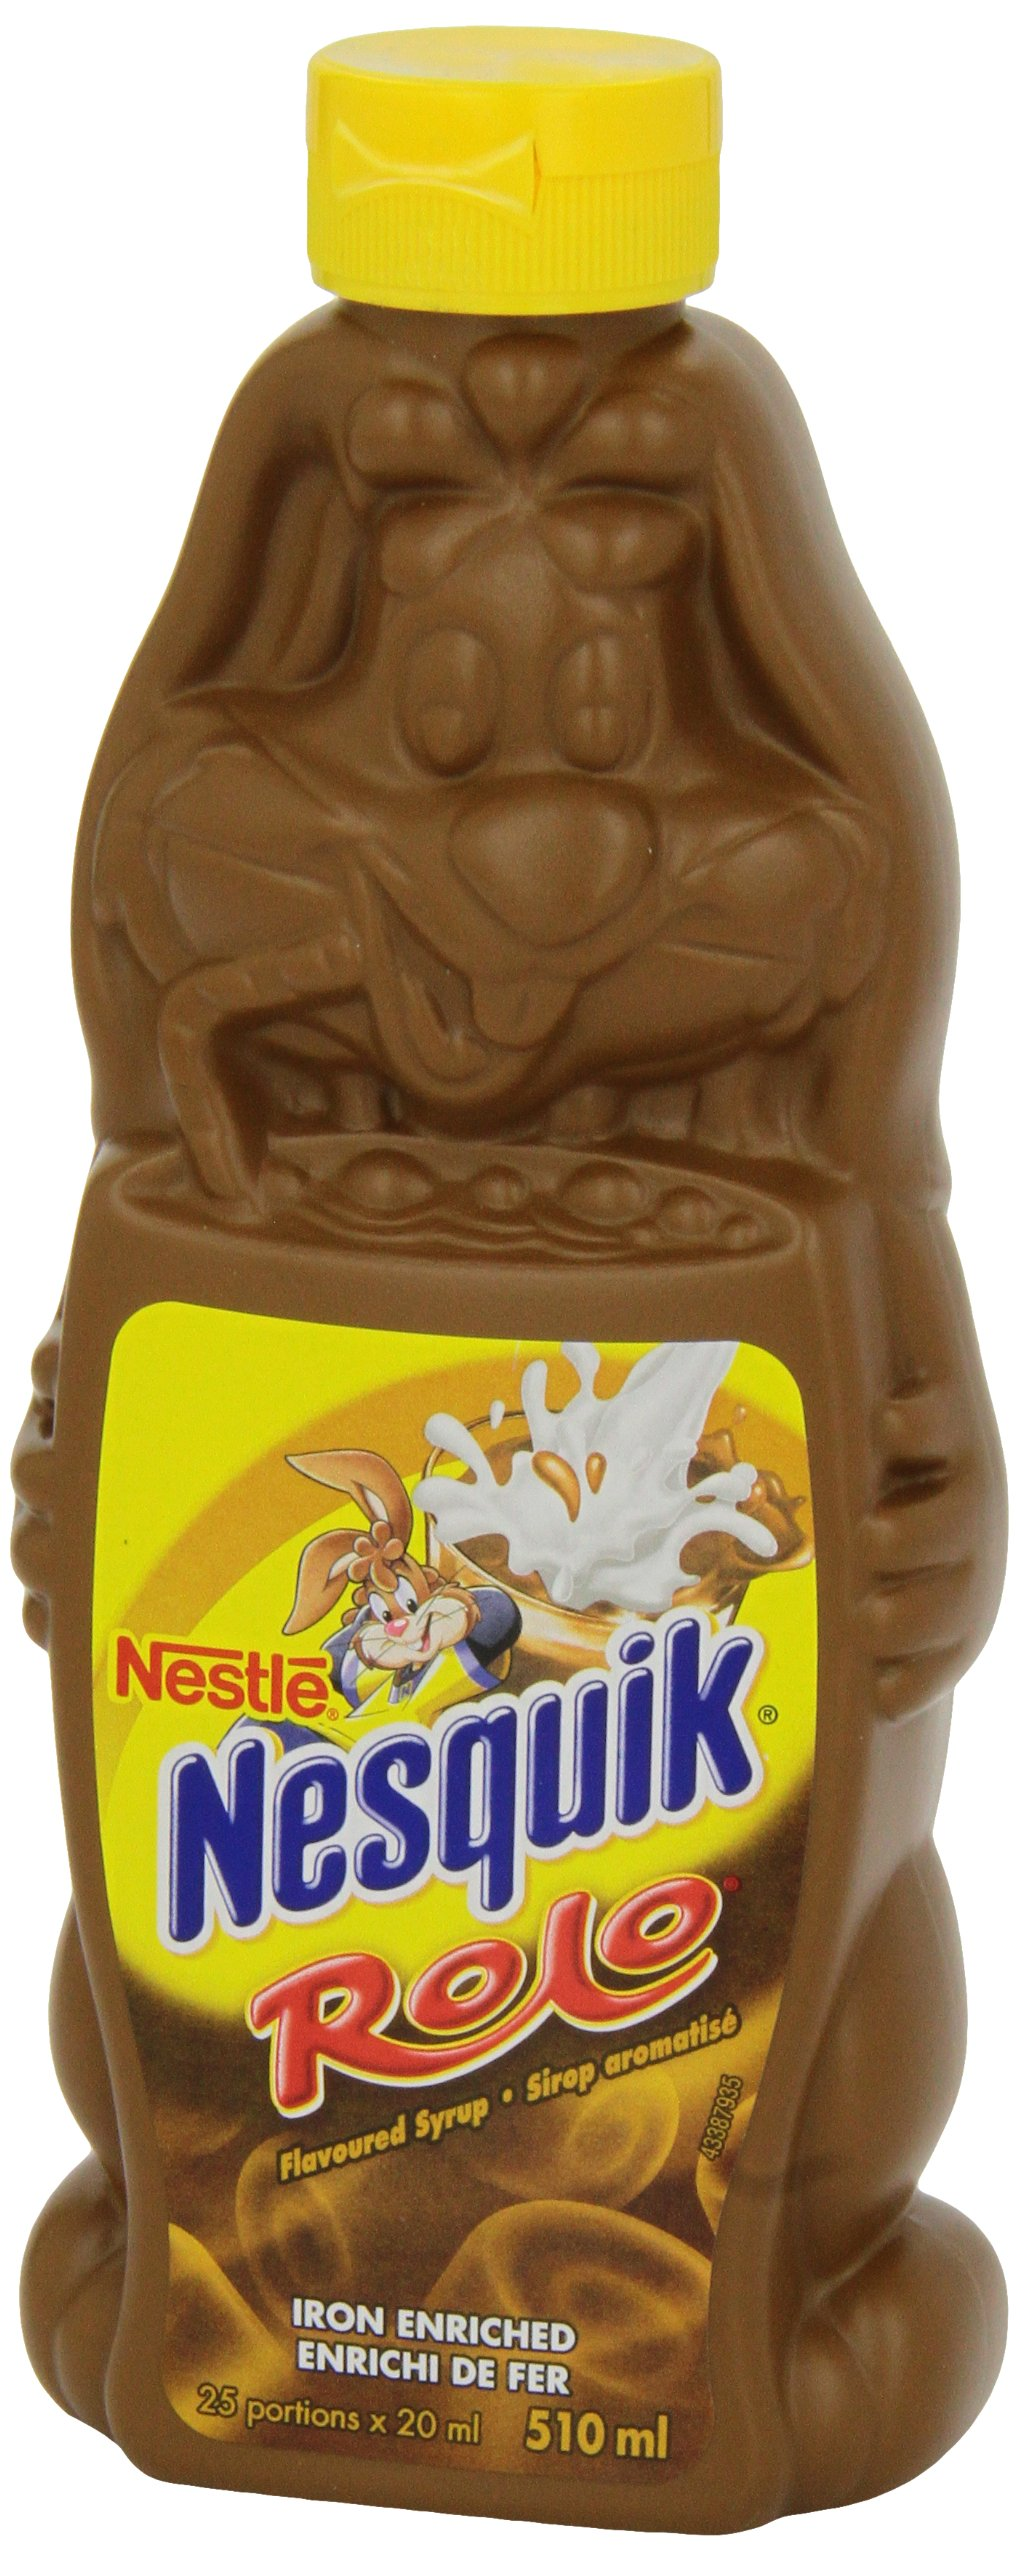 Nestle Nesquik Rolo Flavored Syrup Mix 510ml, 17.9 Oz, Made in Canada by Nesquick